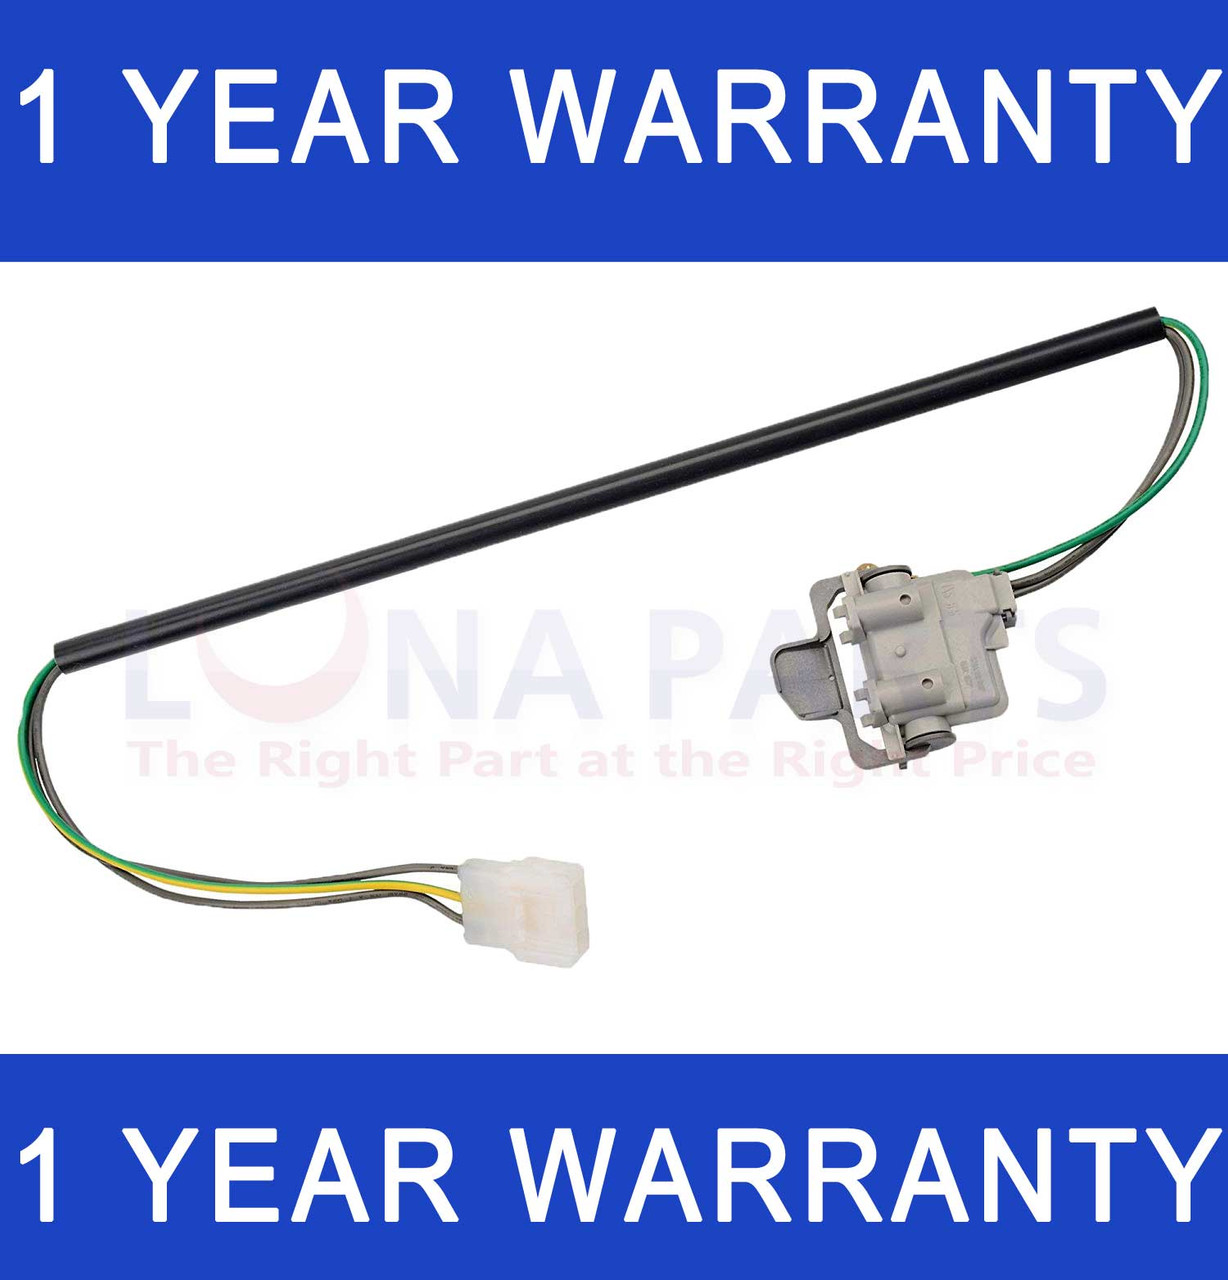 NEW 3392266 DRYER DOOR SWITCH FITS WHIRLPOOL KENMORE SEARS MAYTAG KITCHENAID